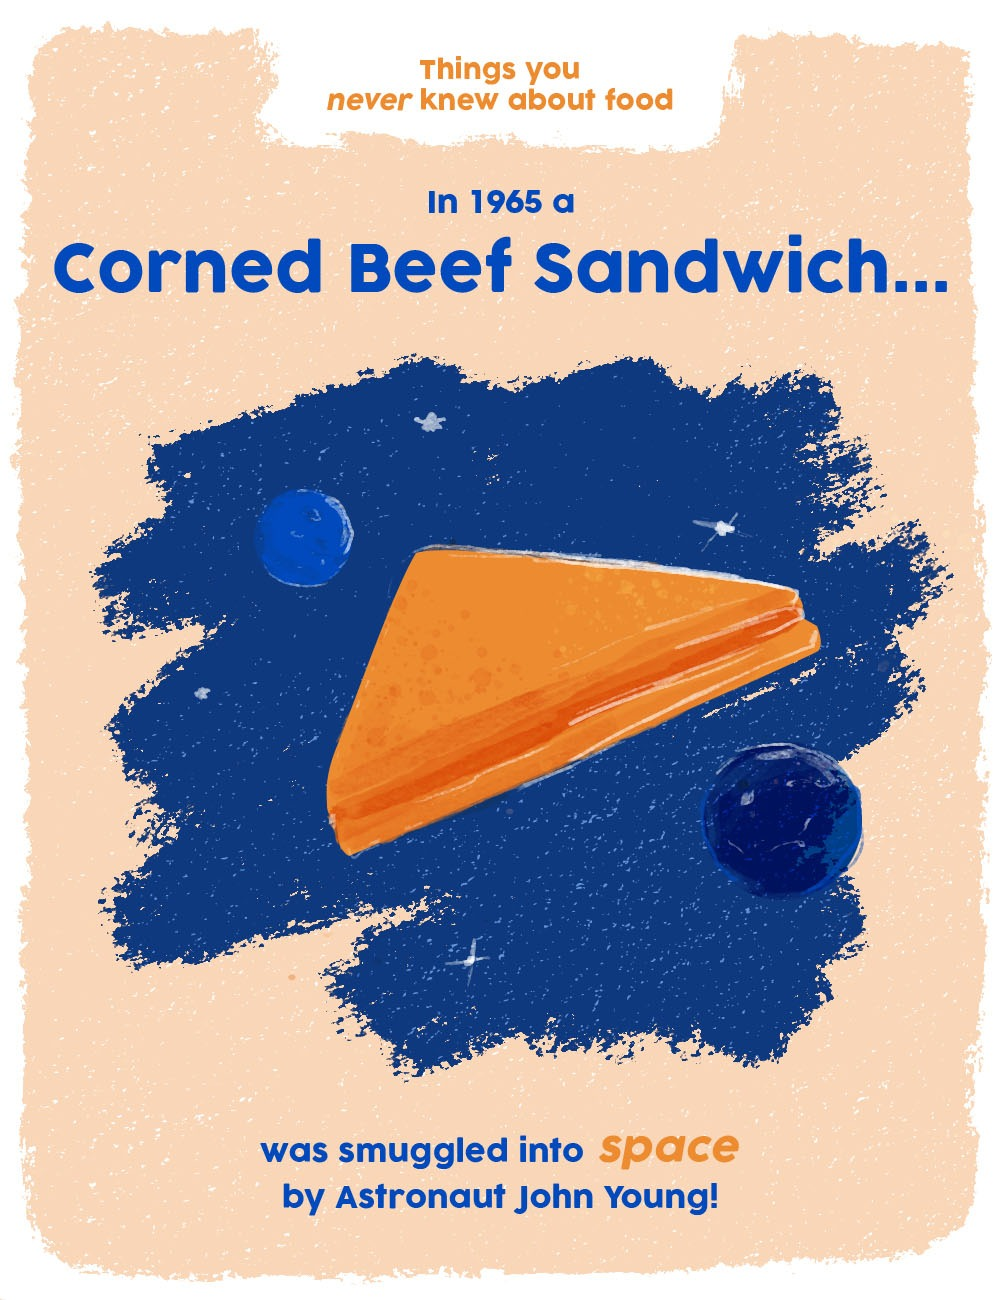 things you never knew about food graphics - corned beef sandwich in space